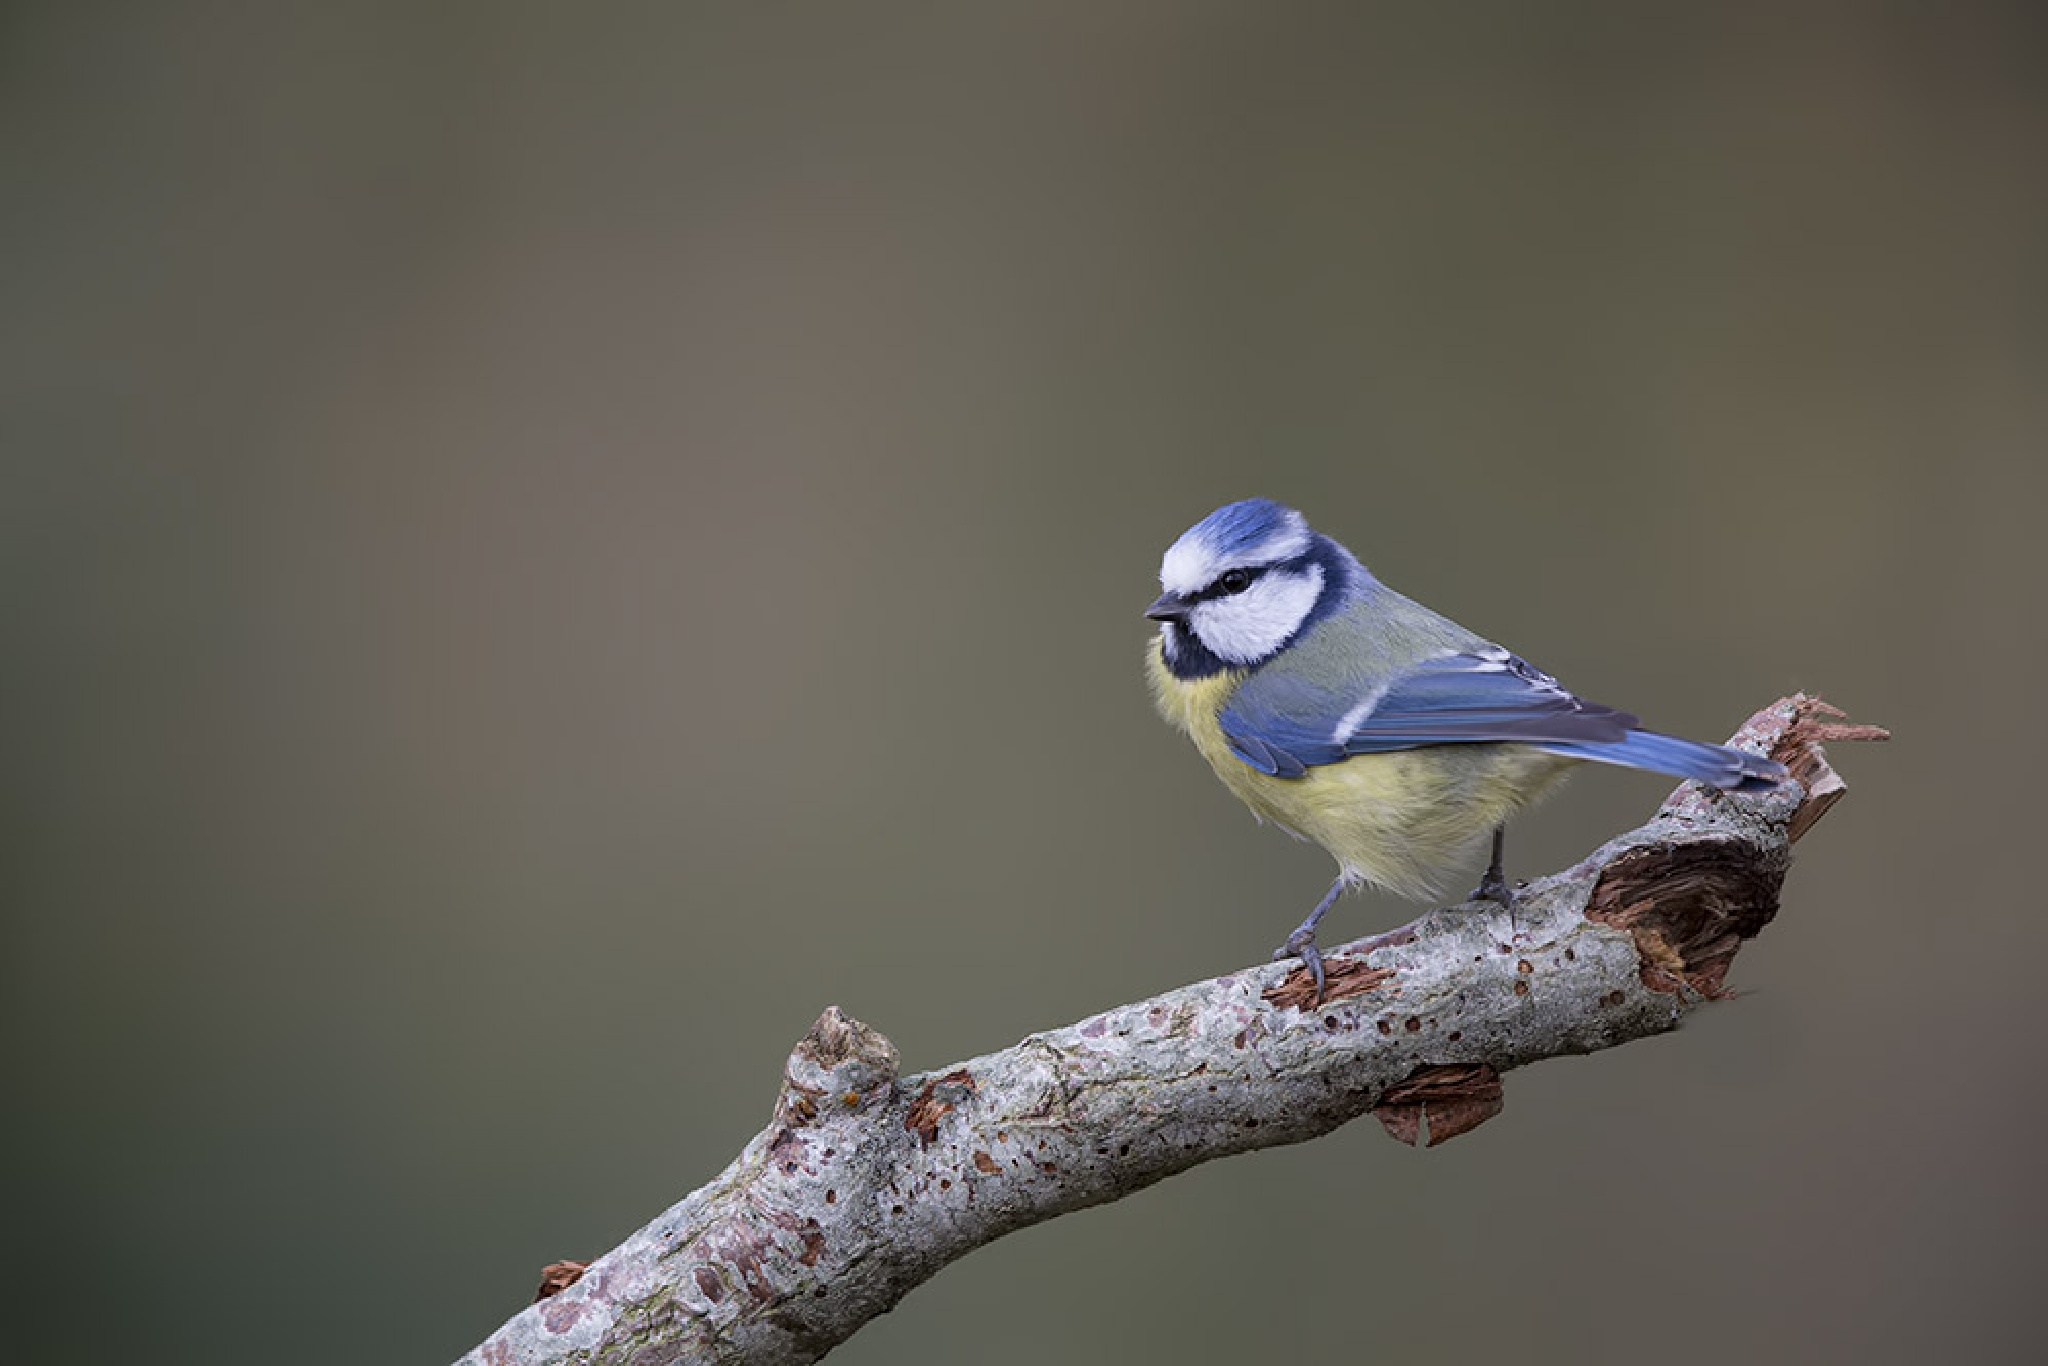 Lil' blue by denis.keith